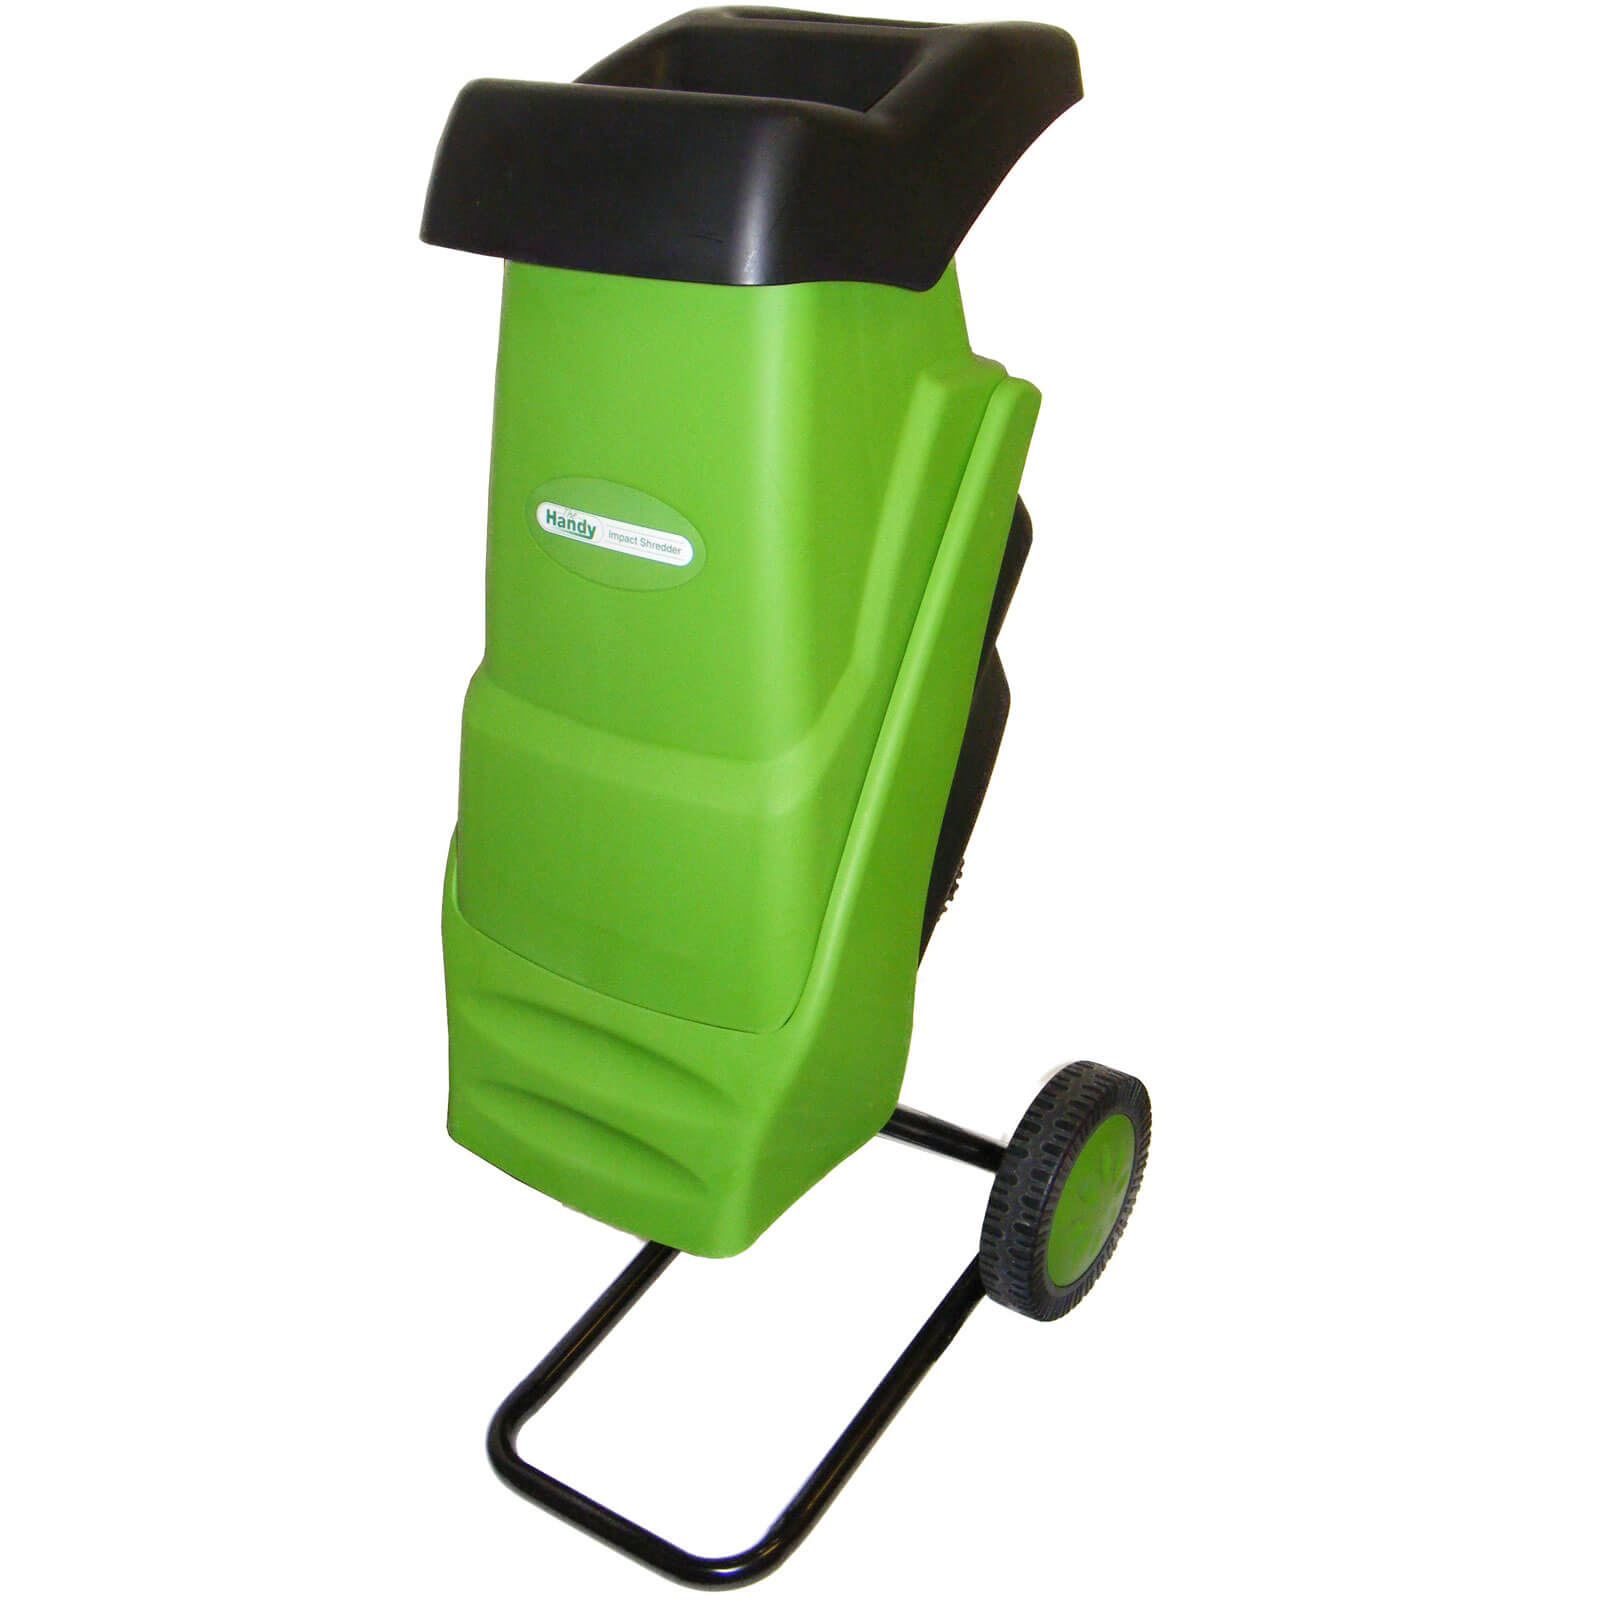 Handy Impact Garden Shredder Max 40mm Capacity 2400w 240v